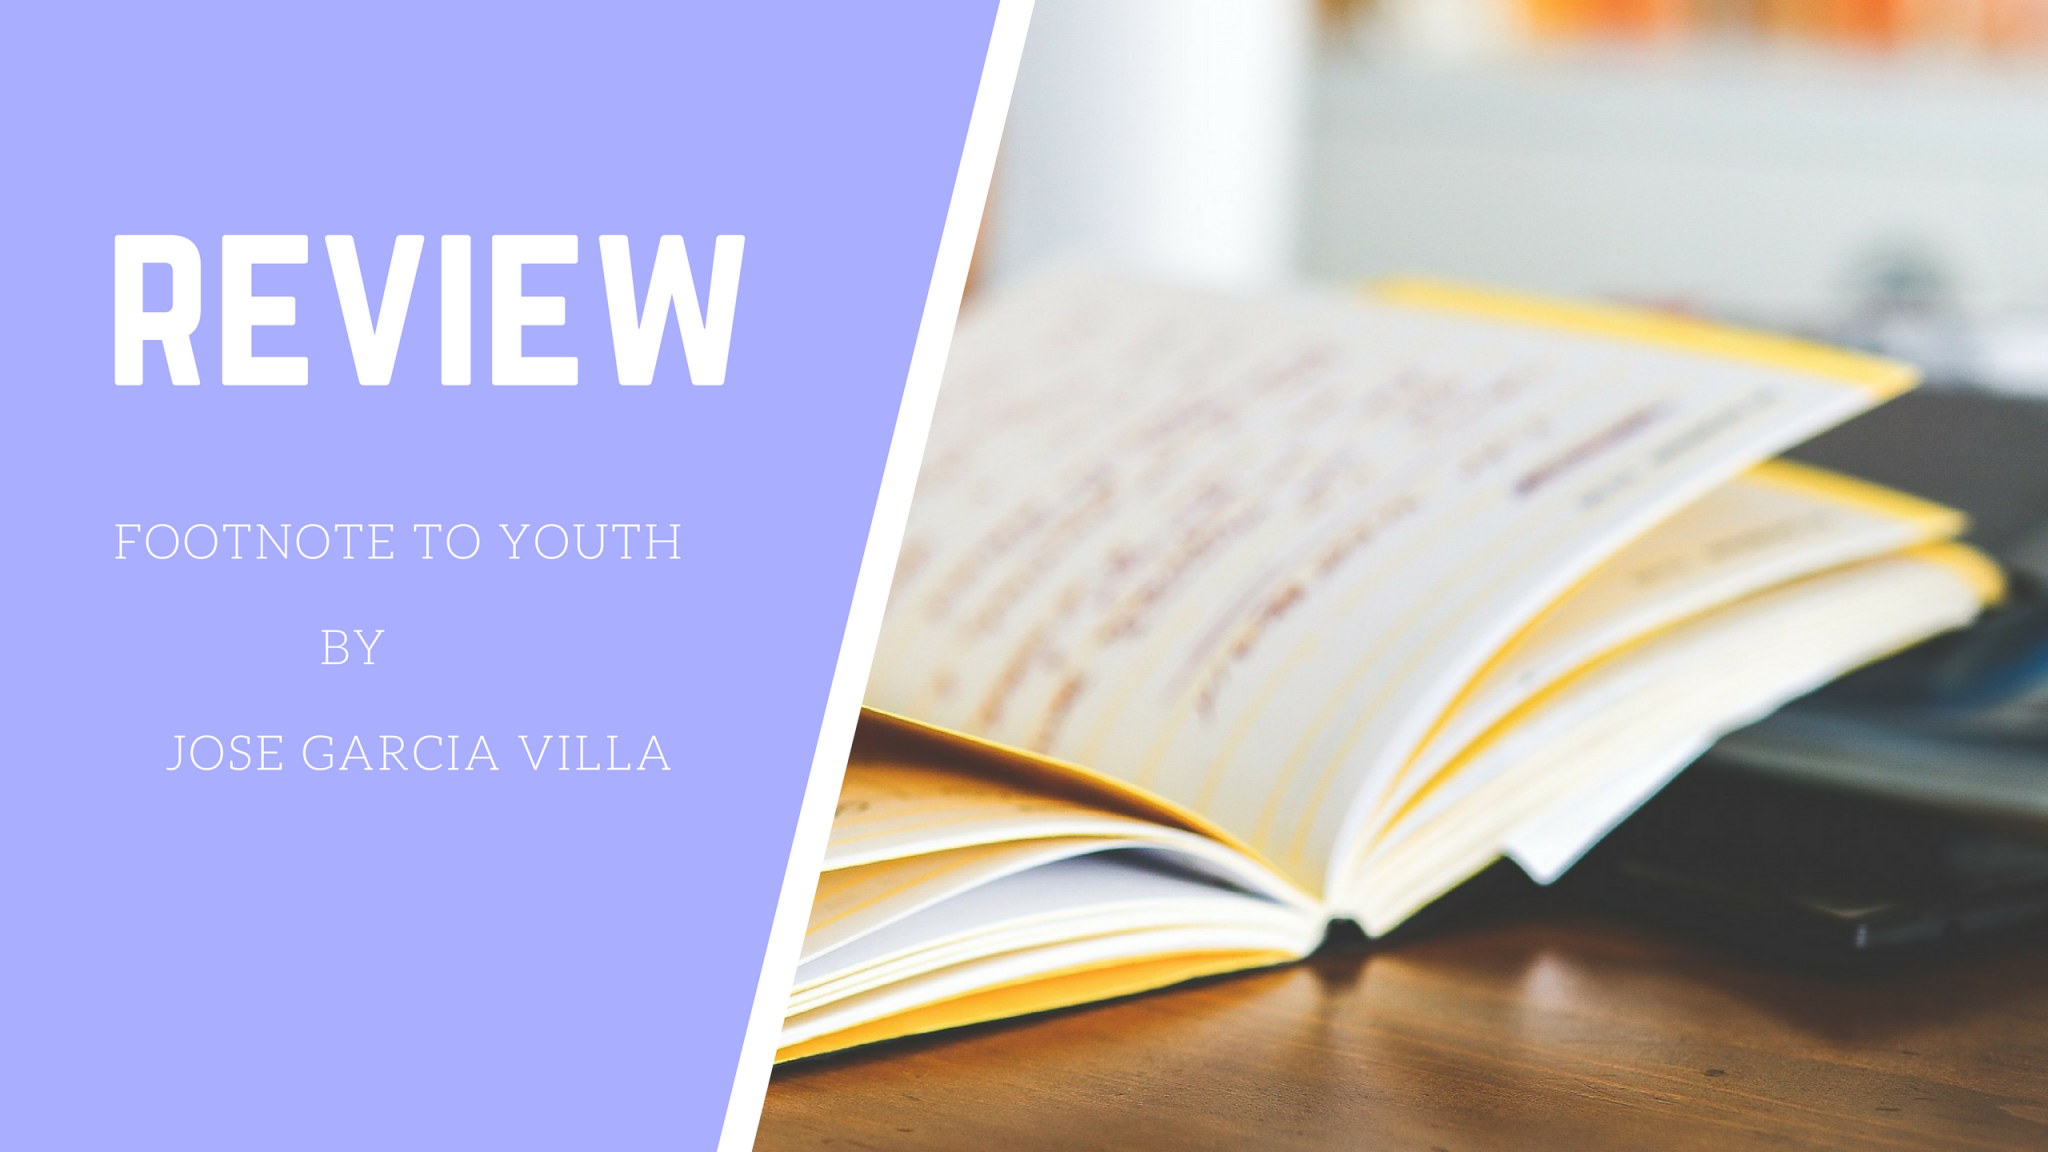 Footnote to Youth by Jose Garcia Villa